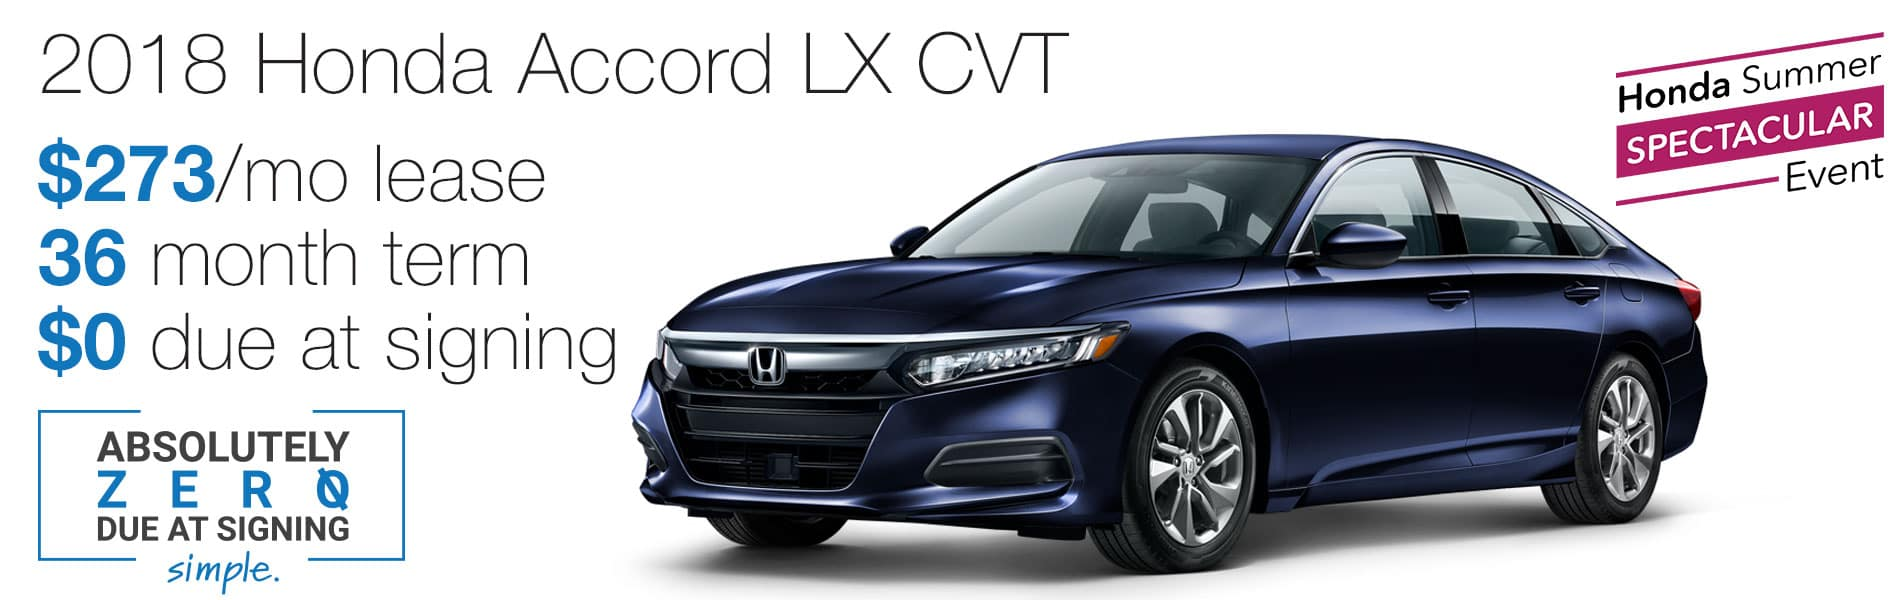 Lease a 2018 Honda Accord LX CVT for $273 per month with absolutely $0 due at signing